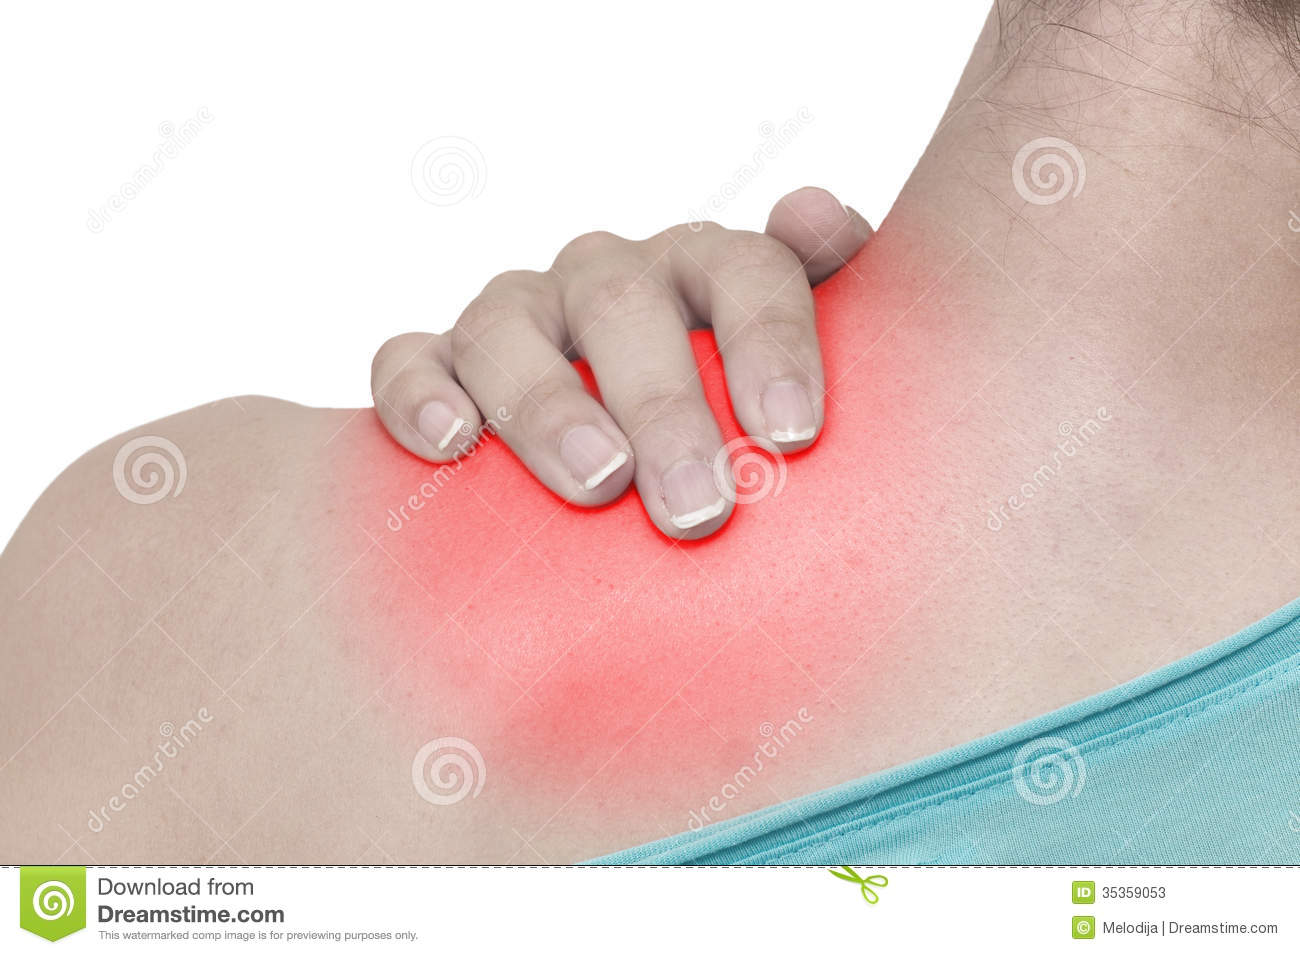 Cialis joint pain